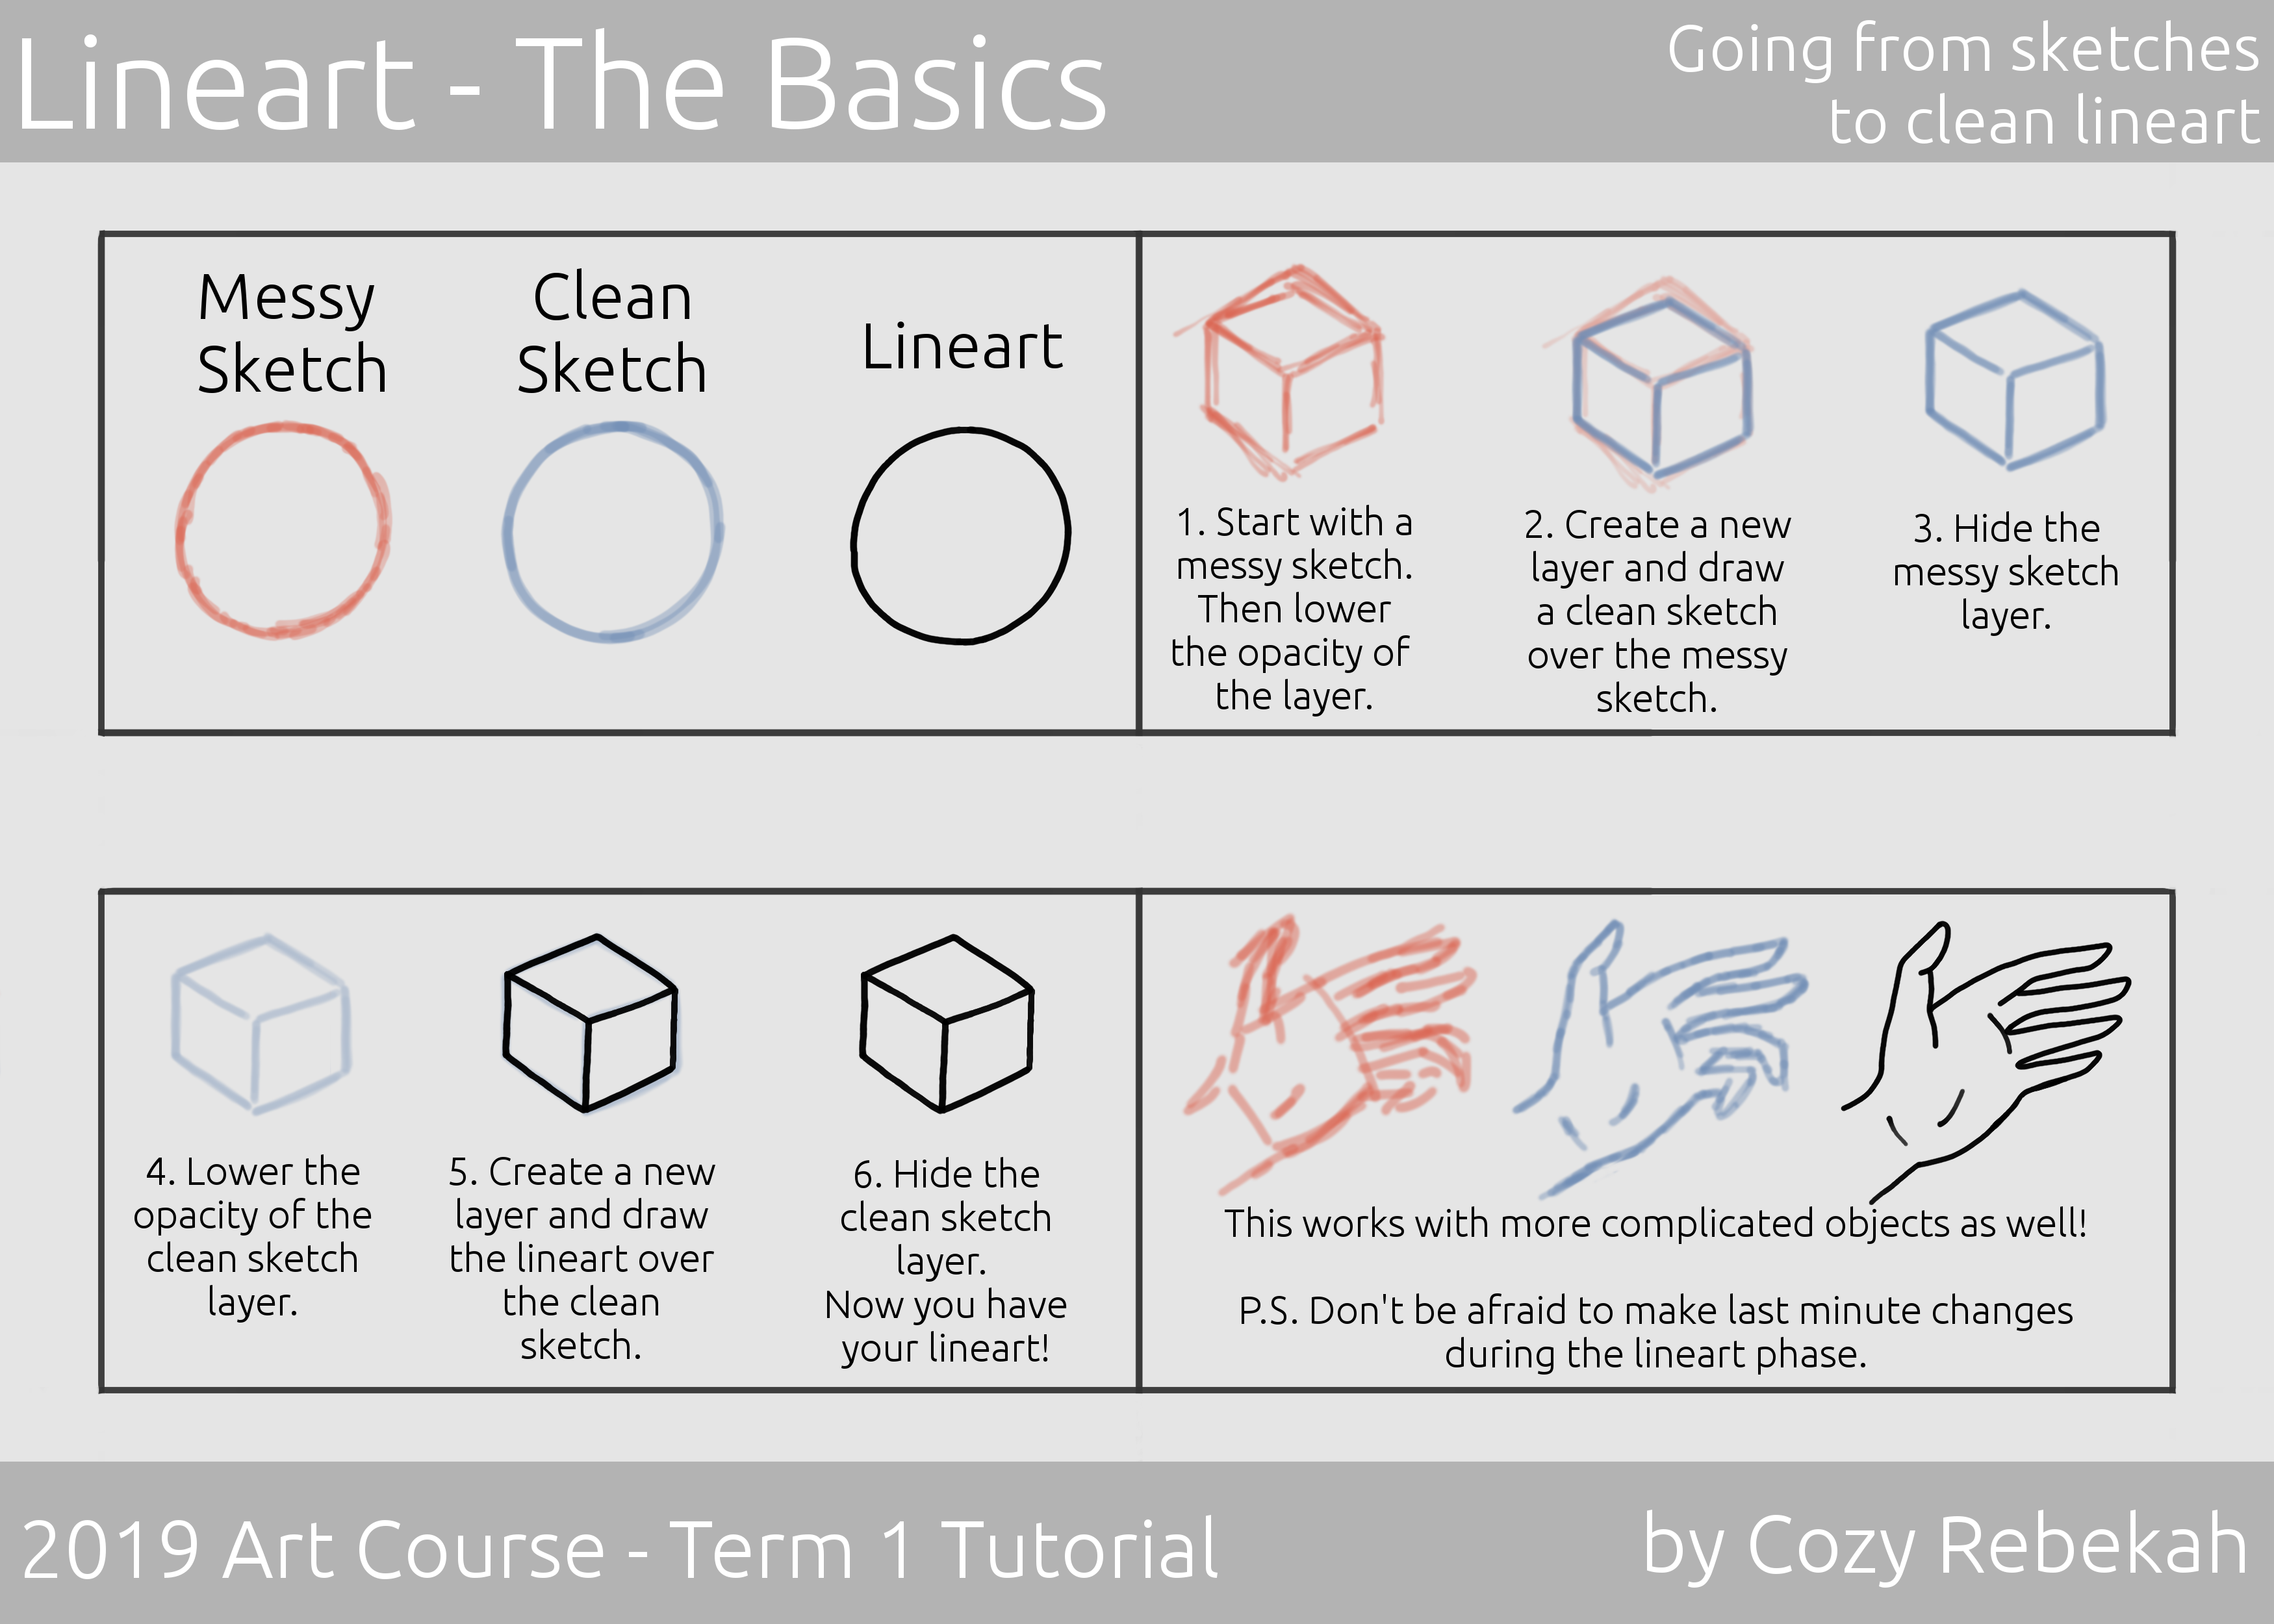 2019 Art Course - Term 1 - Lineart Tutorial P1 - cozyrebekah.com